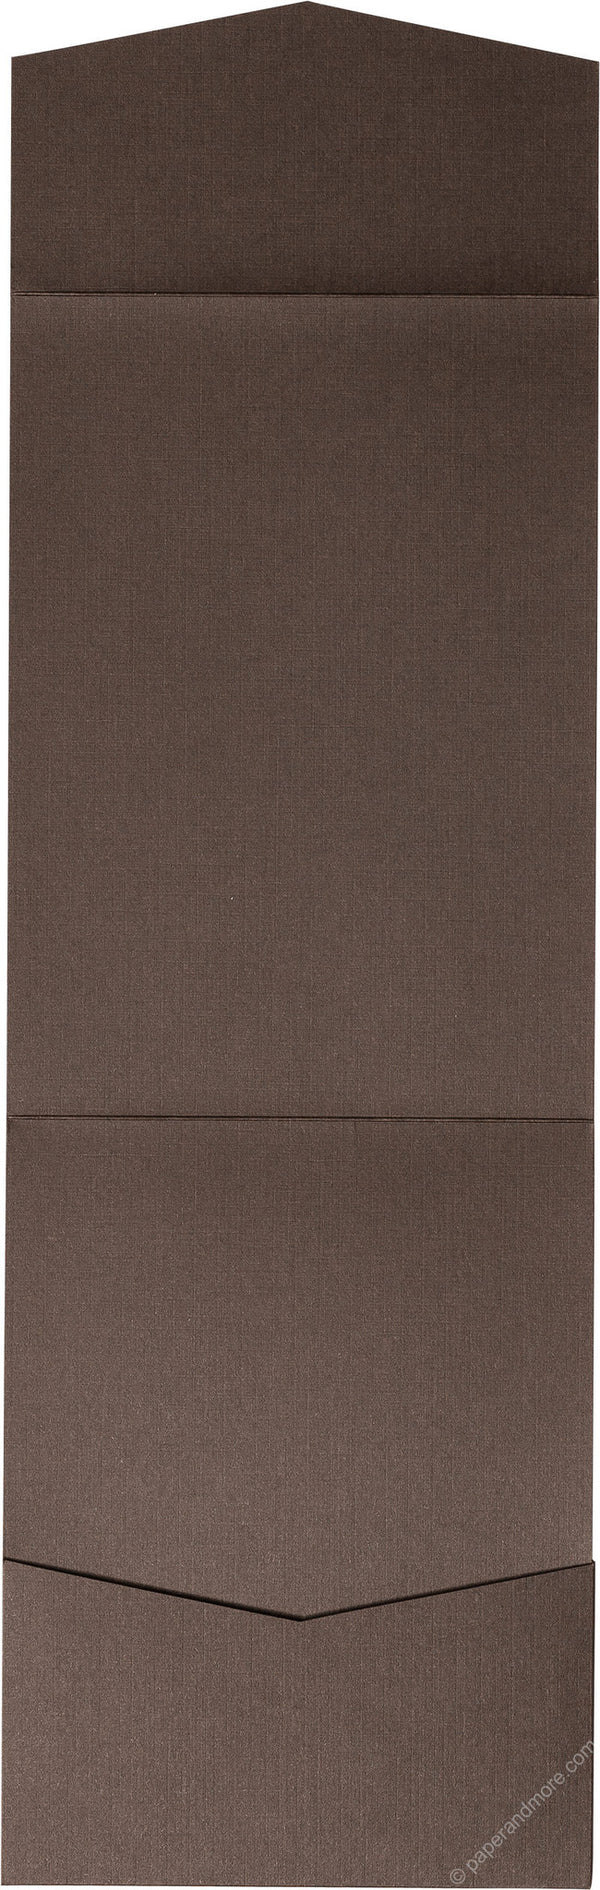 Dark Brown Linen Pocket Invitation Card, A7 Cascade - Paperandmore.com